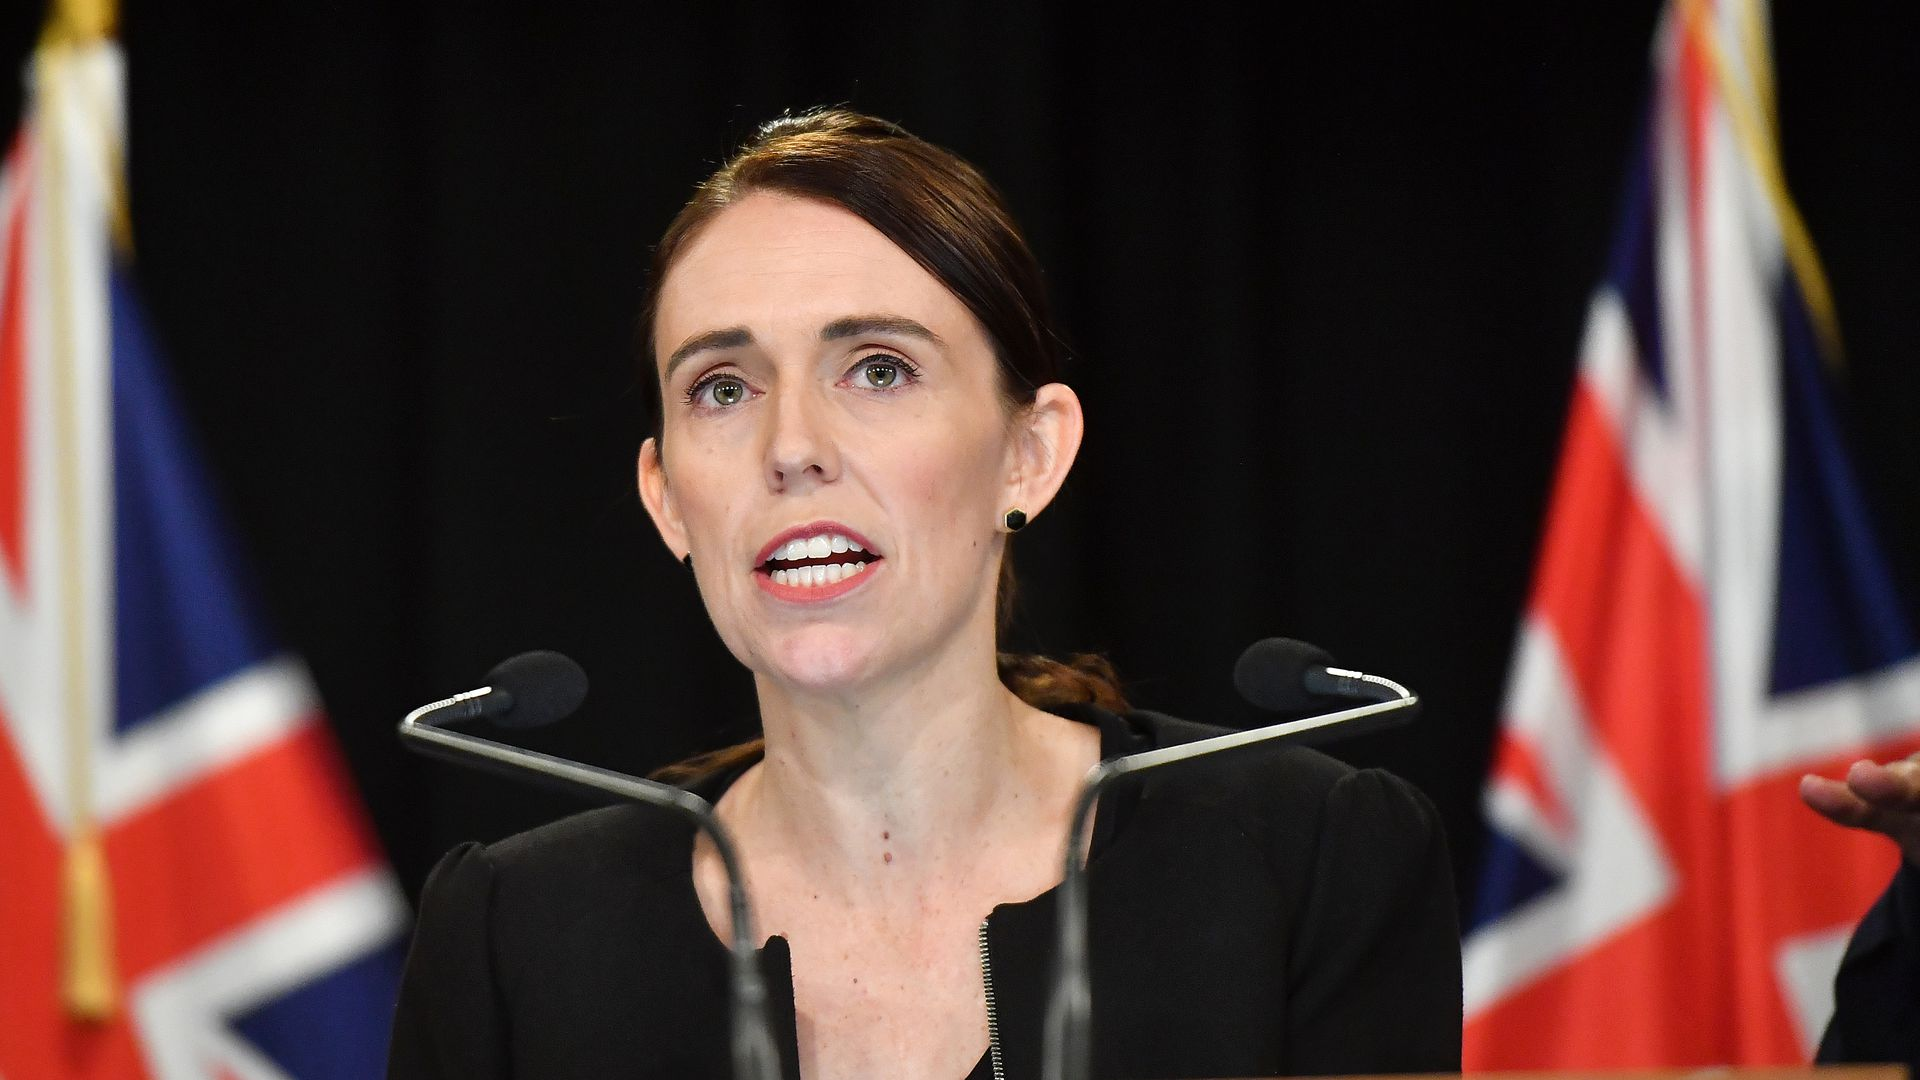 Jacinda Ardern has vowed to change the gun laws quickly.